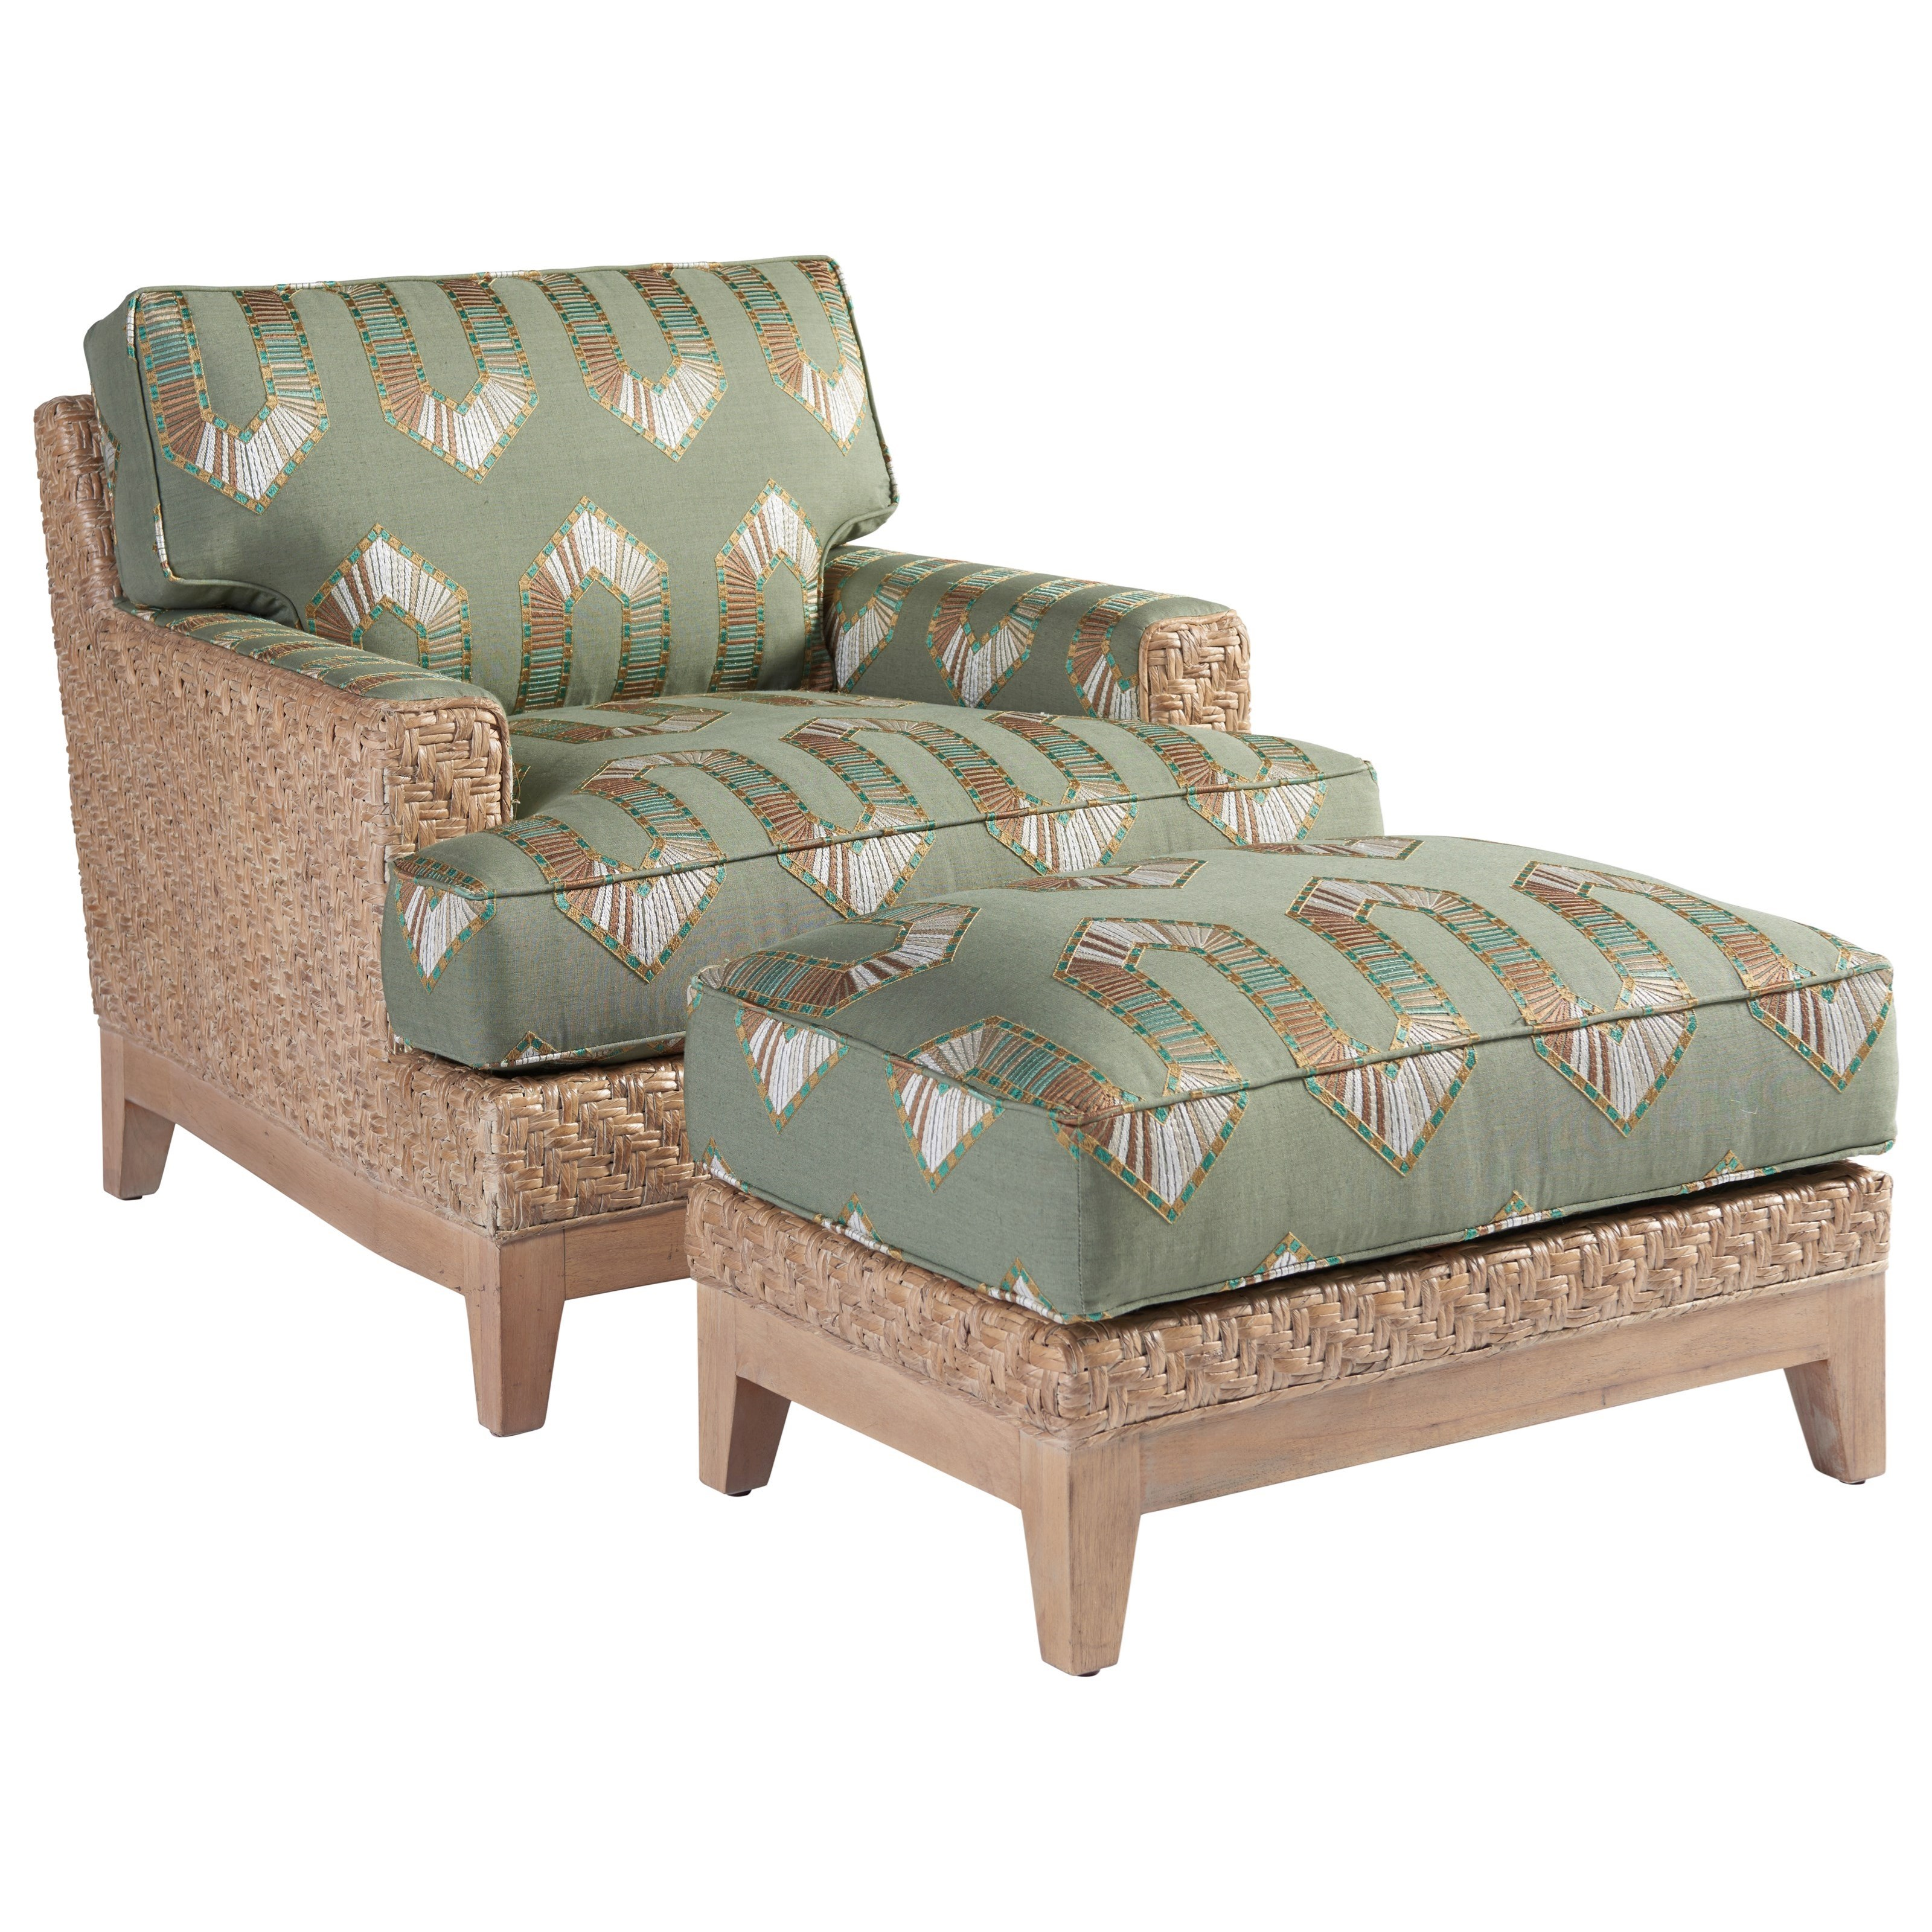 Los Altos Danville Chair & Ottoman by Tommy Bahama Home at Baer's Furniture